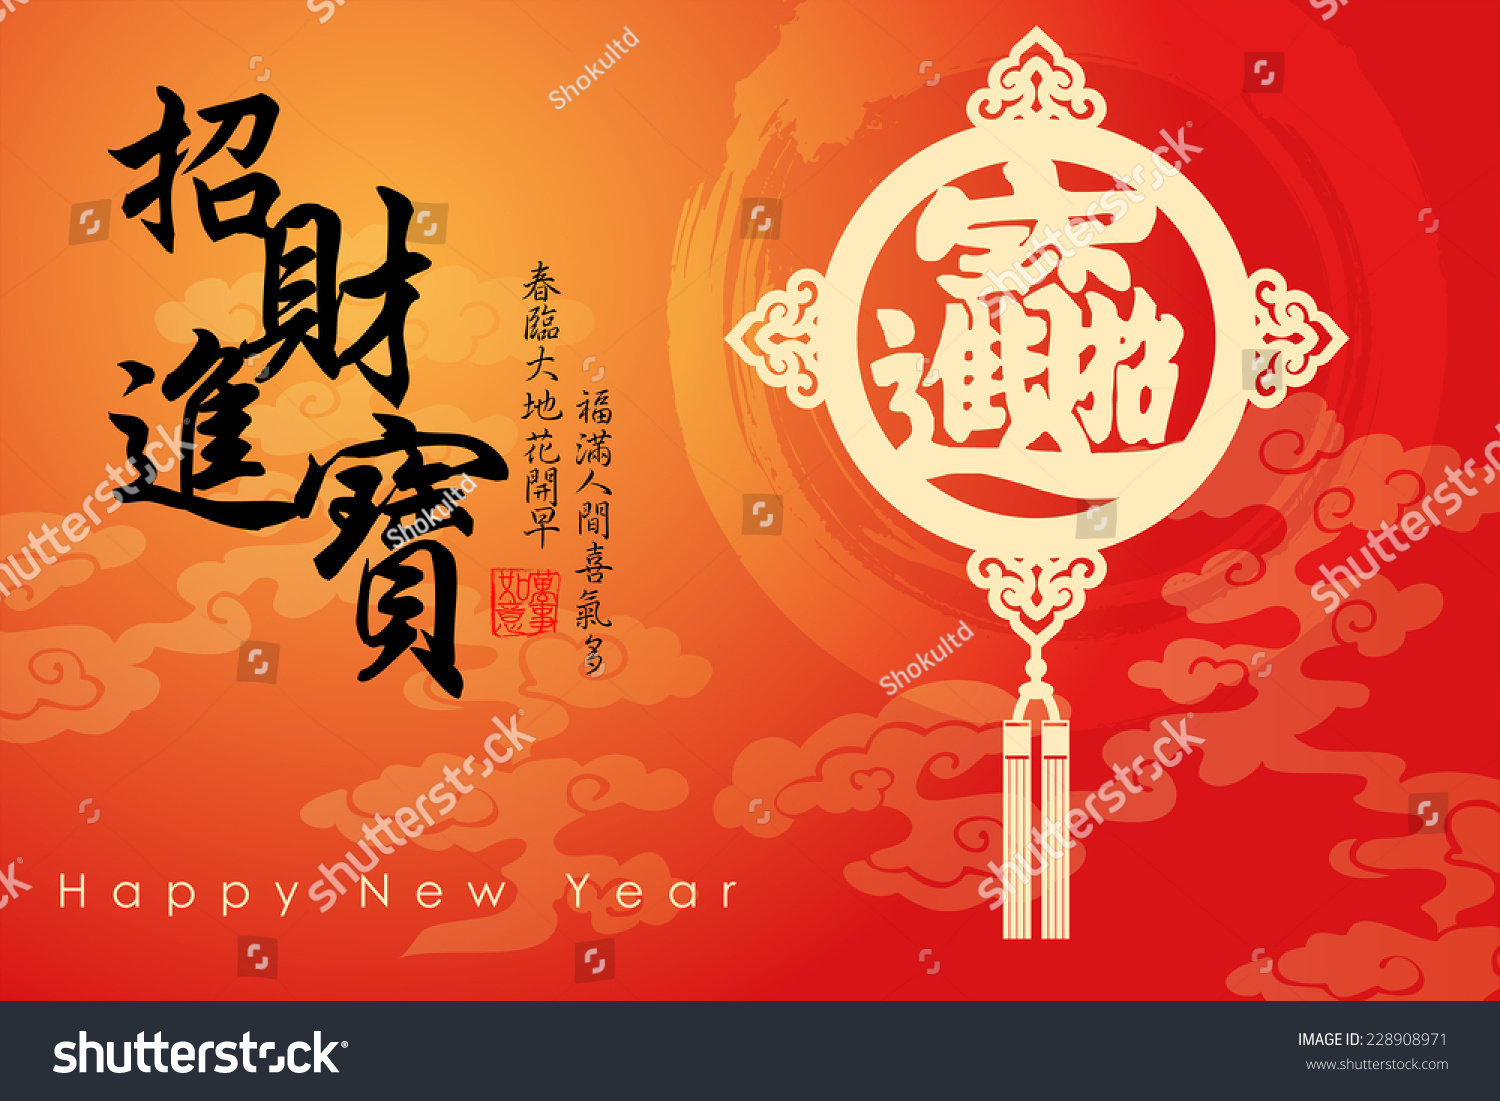 New Greeting For Chinese New Year In Mandarin